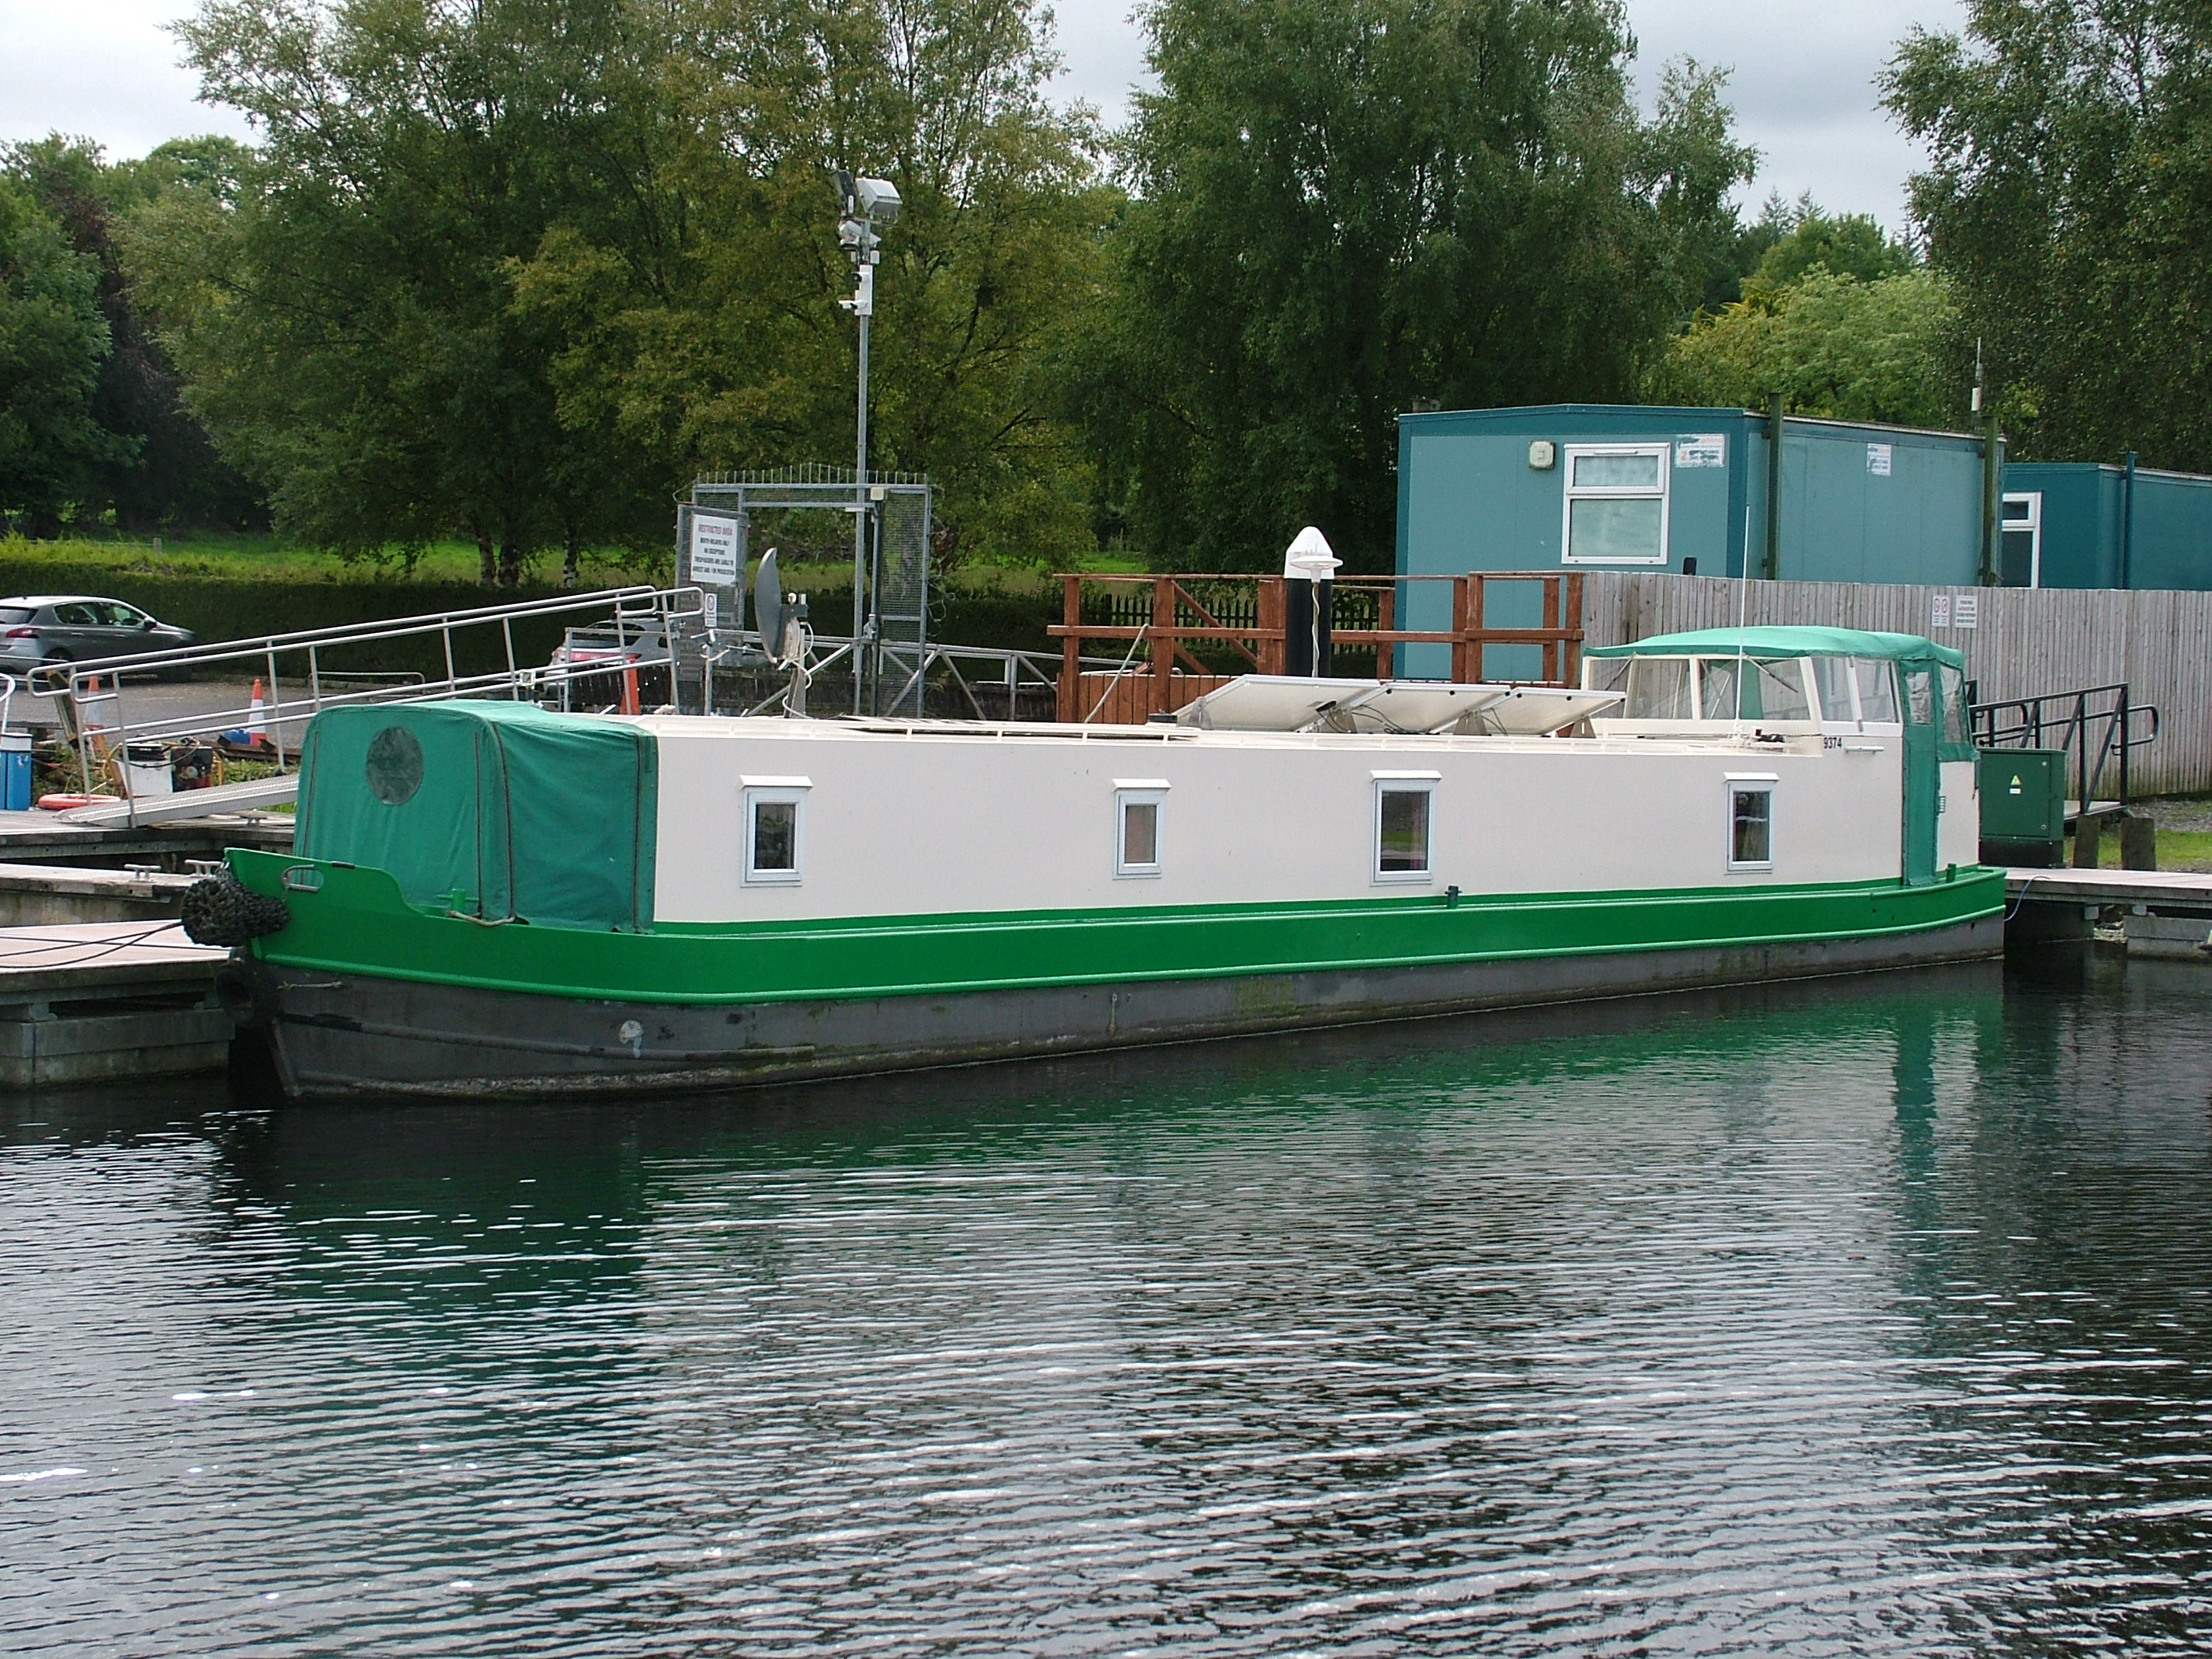 55ft Narrow boat liveaboard